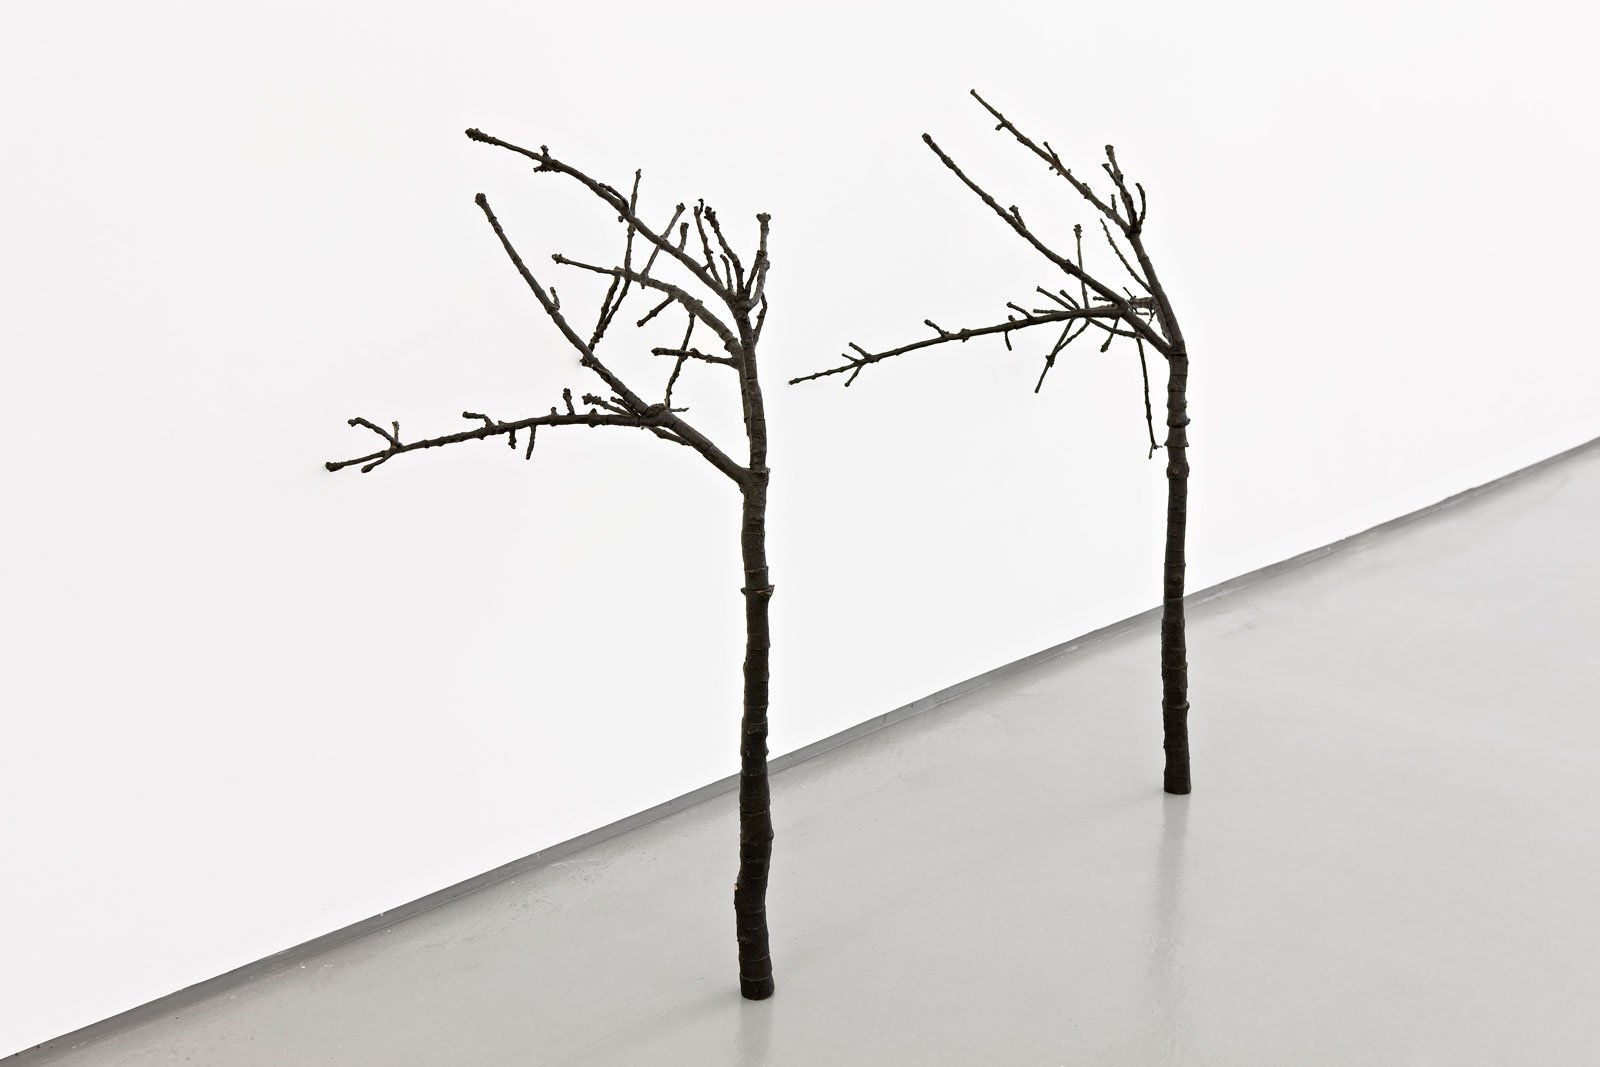 Andreas Eriksson, A Second Time, 2007, Bronze, two parts, 130 x 100 x 100 cm